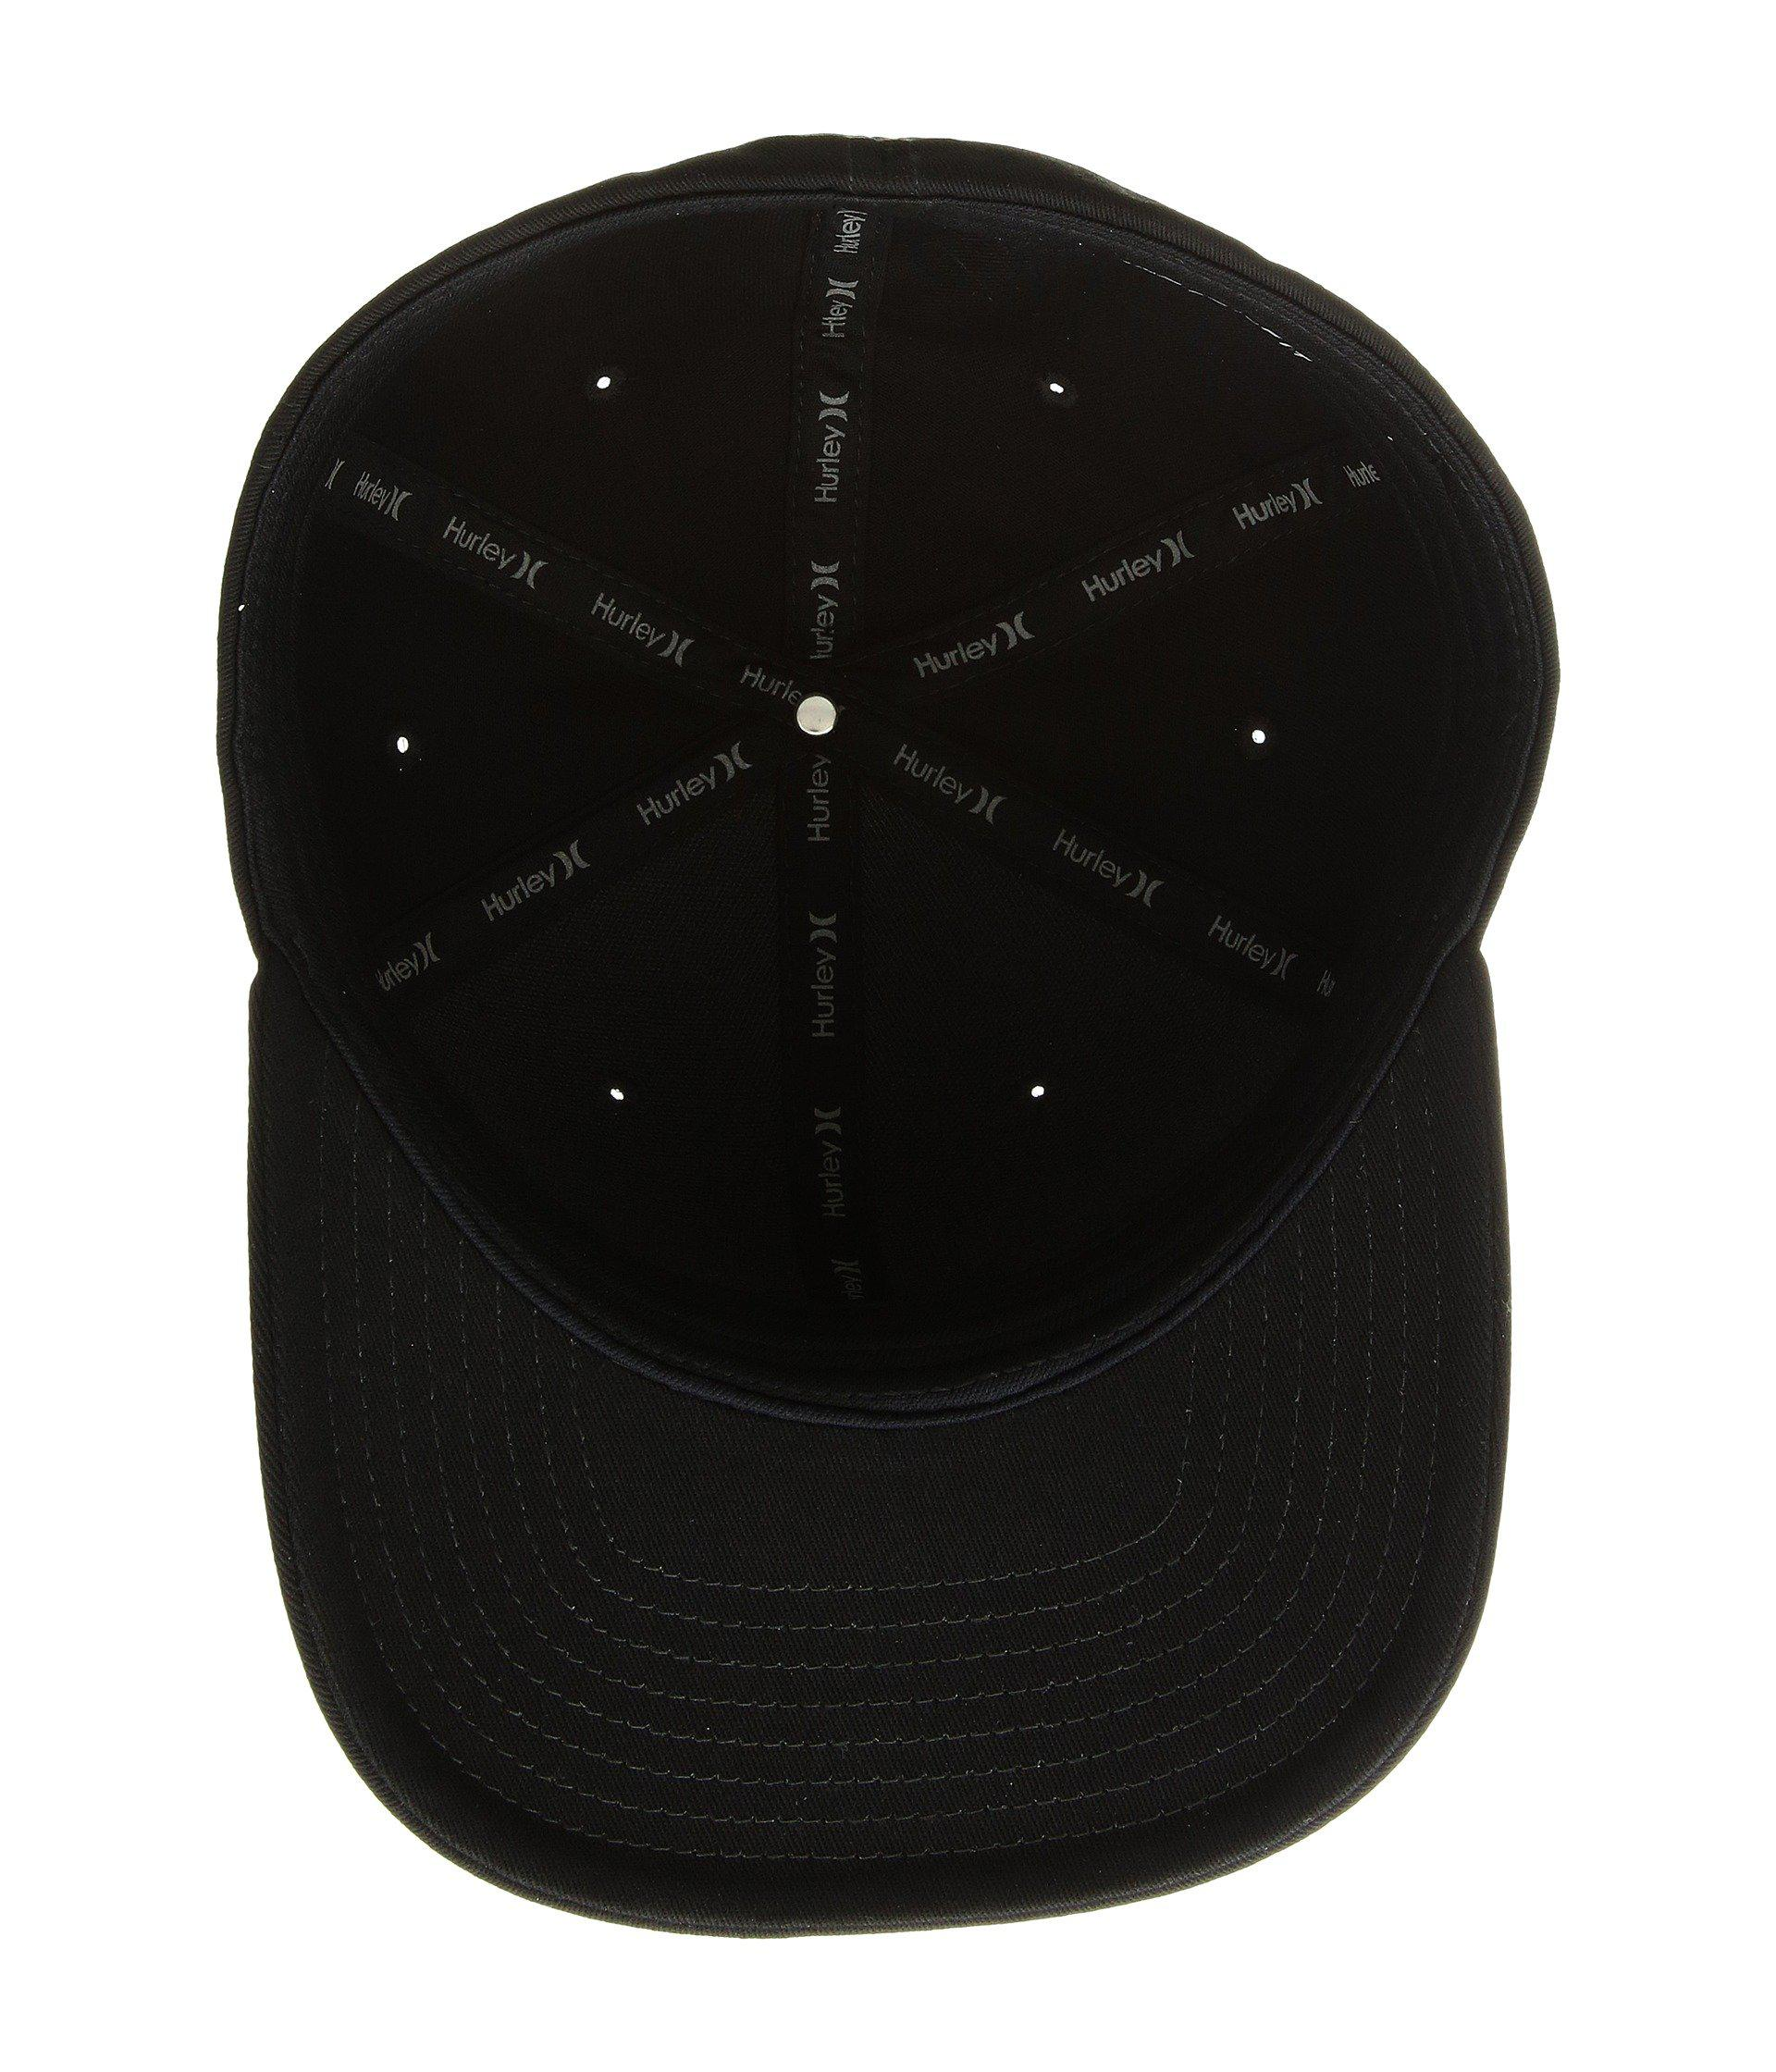 buy online 643a1 45fc5 ... coupon code lyst hurley corp hat black caps in black for men 8145b 38240